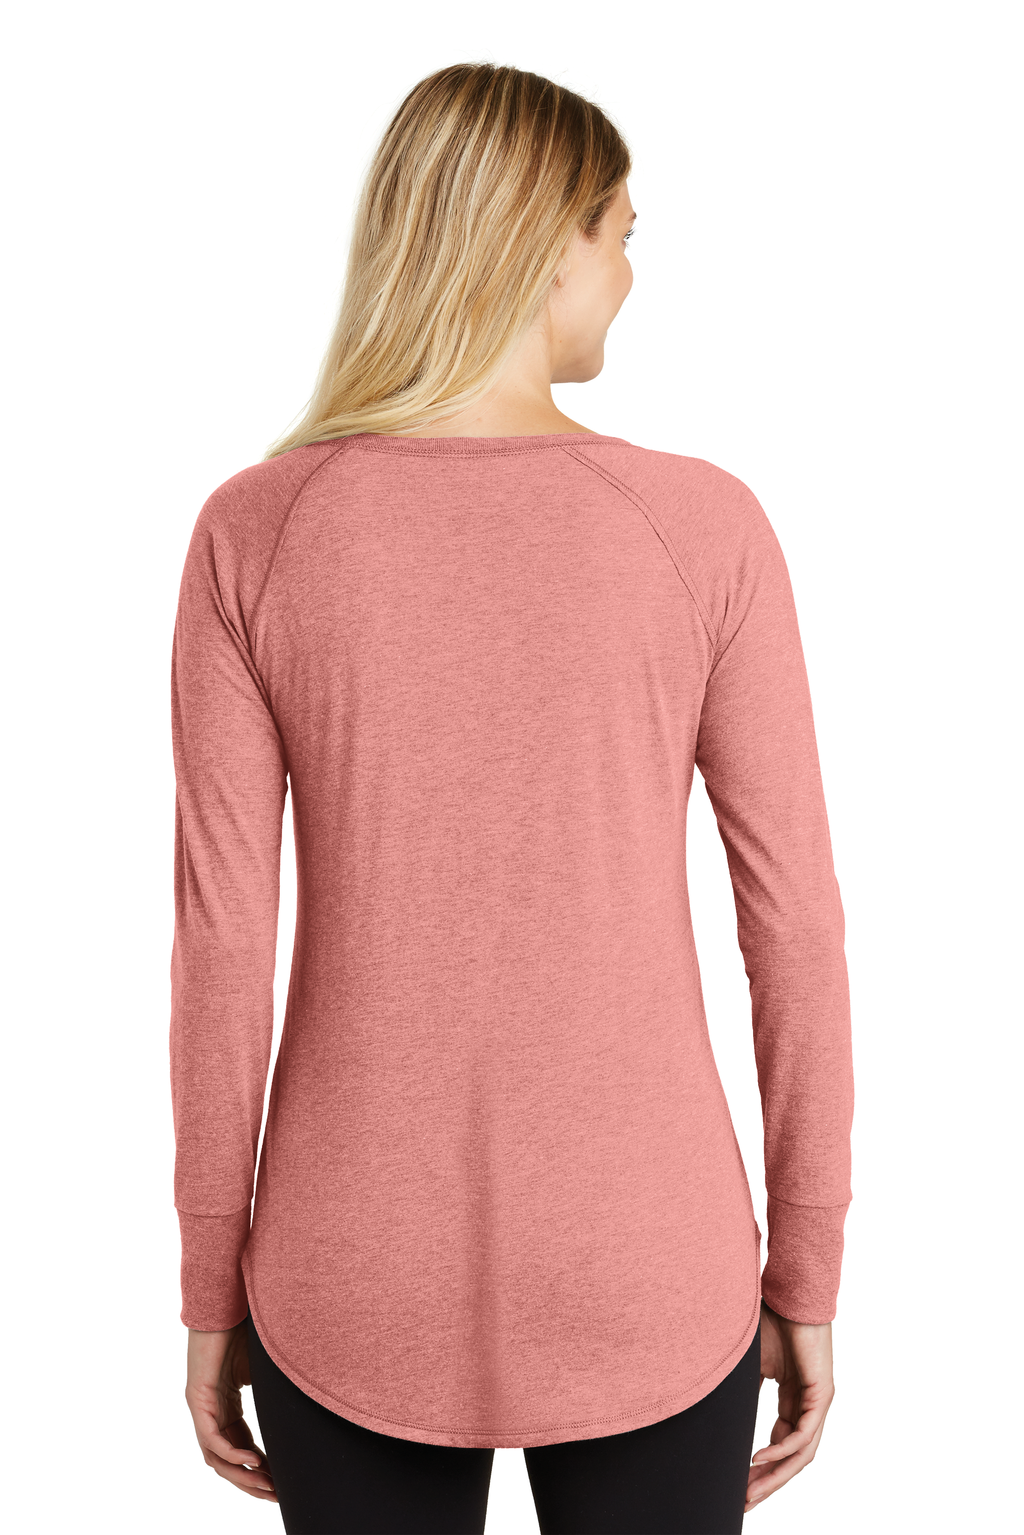 J&M Ladies TriBlend Long Sleeve Tunic